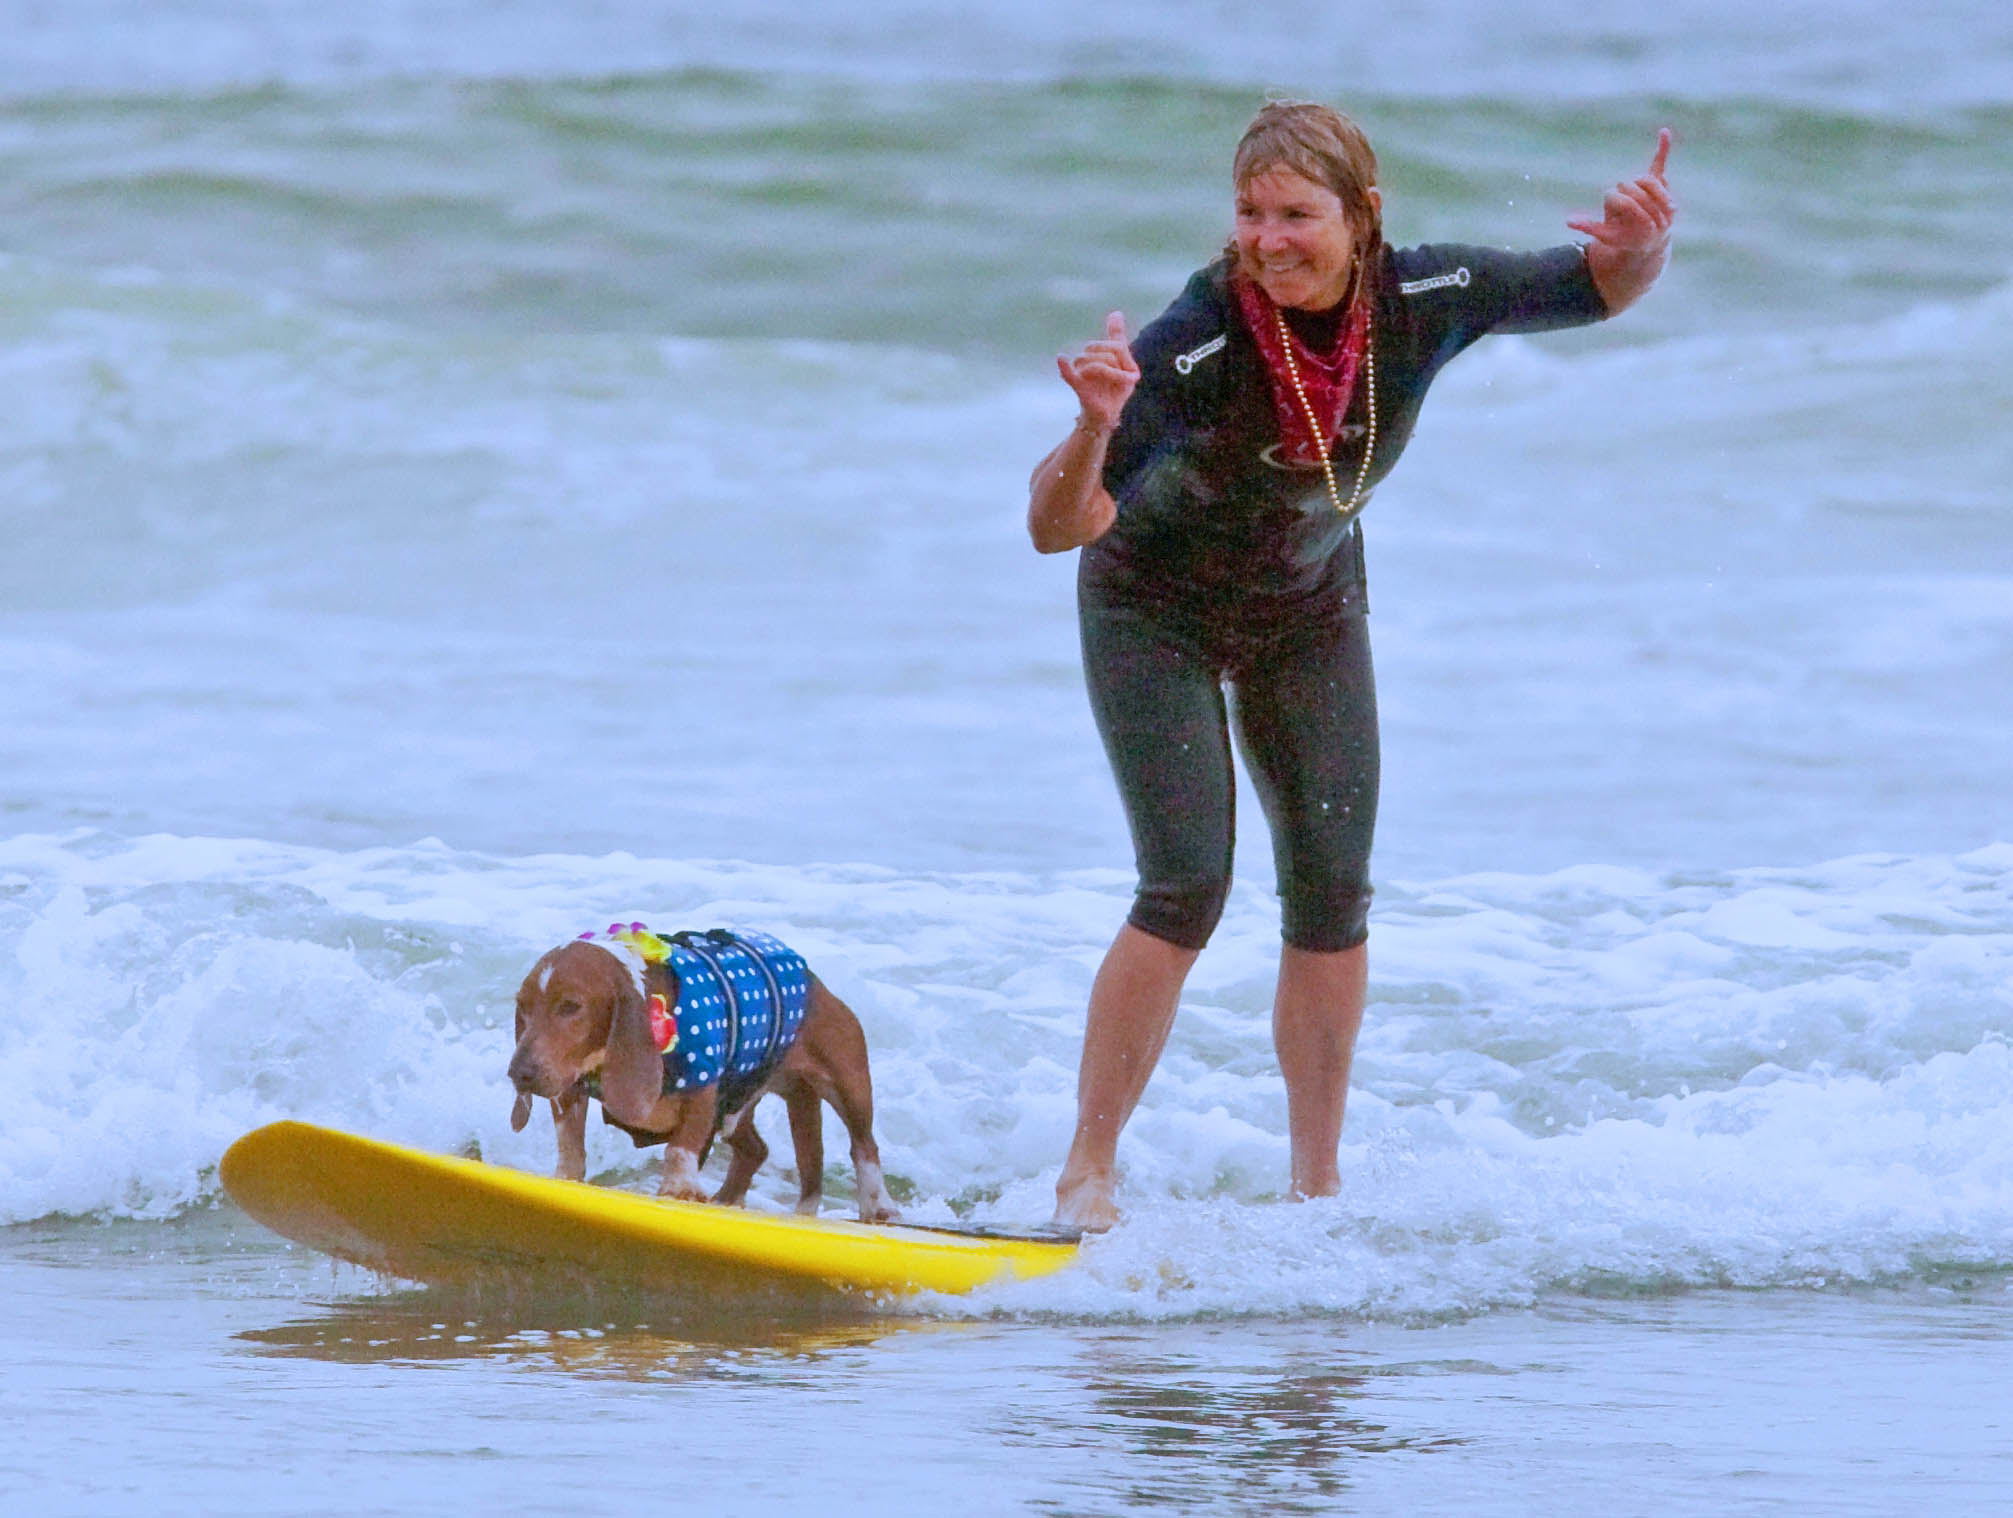 Surf Dog Diaries basset #3 Dude rode waves for years with his mom He learned from Howdy.     Photo: (c) Barb Ayers, DogDiary.org